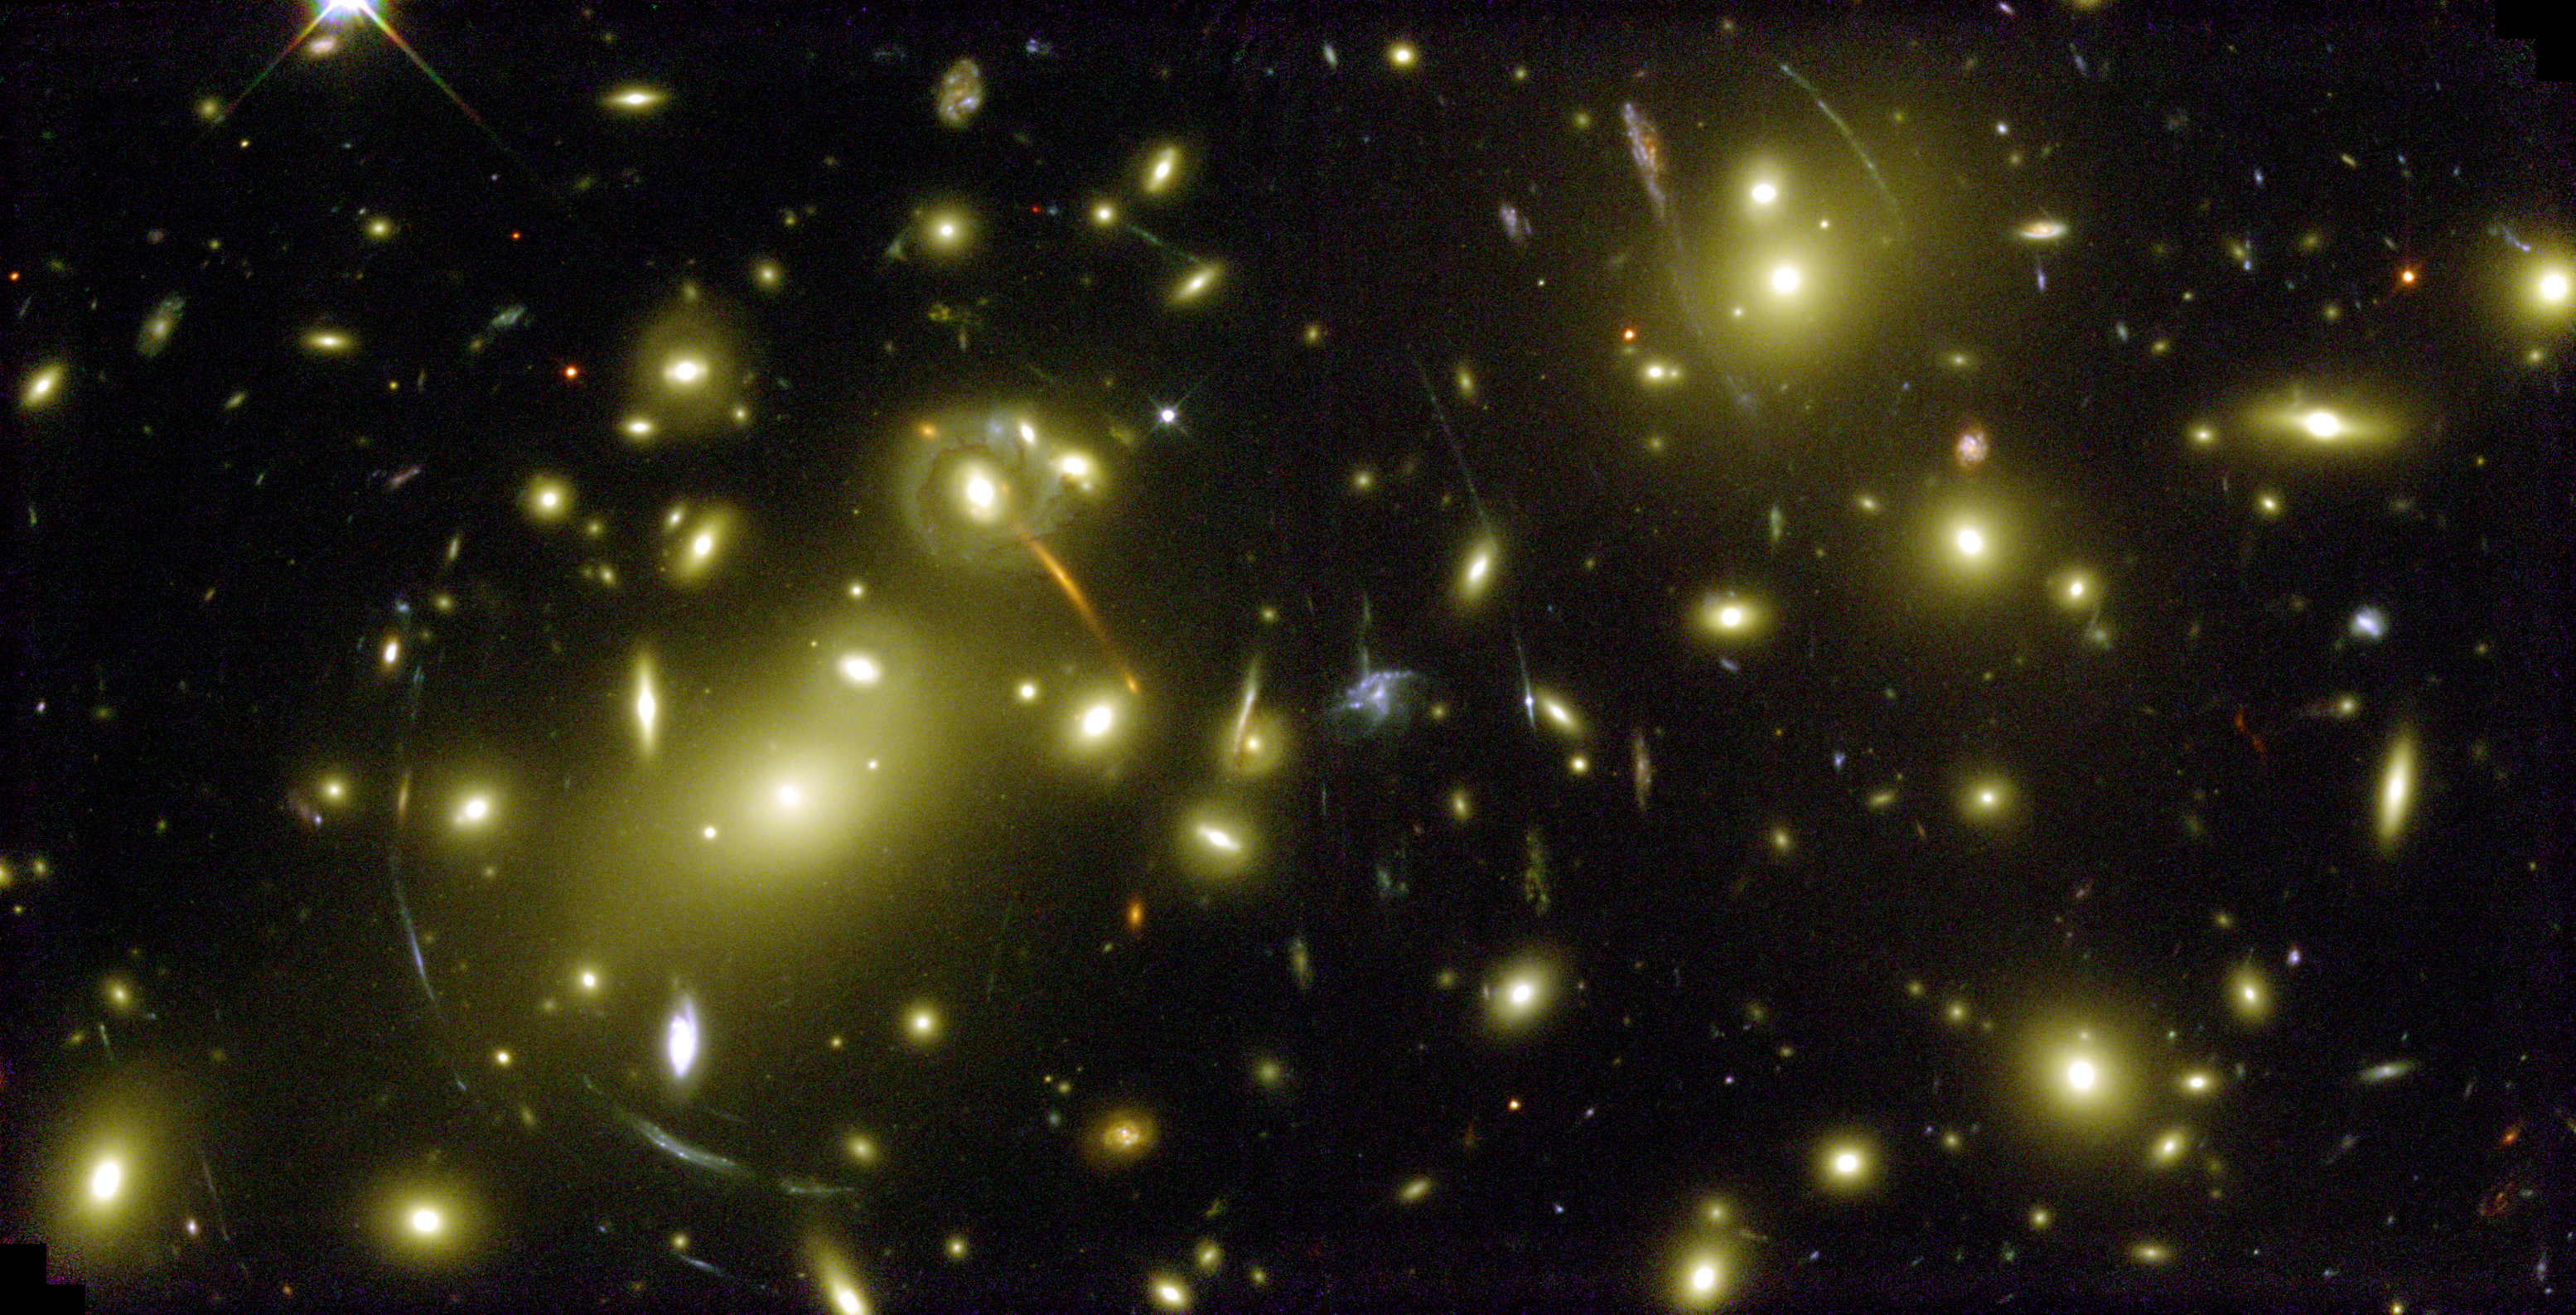 File:A Cosmic Magnifying Glass - Hubble Space Telescope